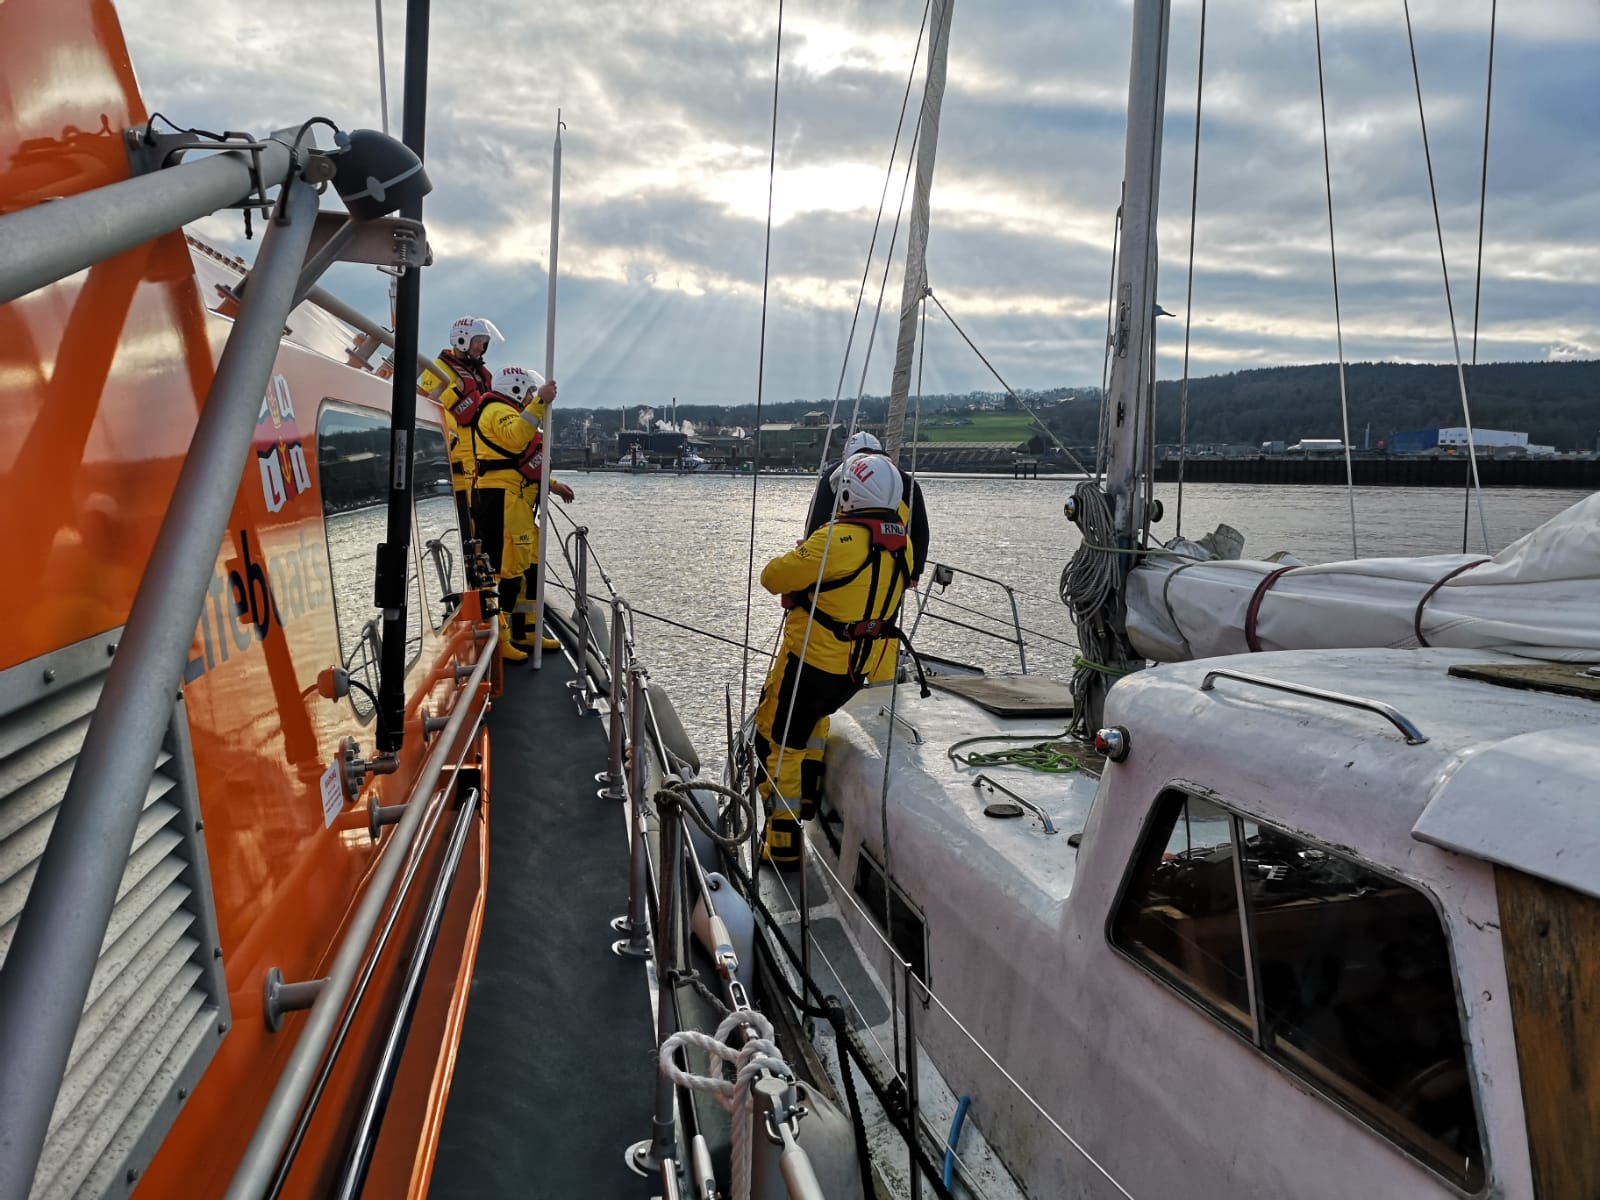 Service to broken-down yacht off Prestatyn 25/1/20